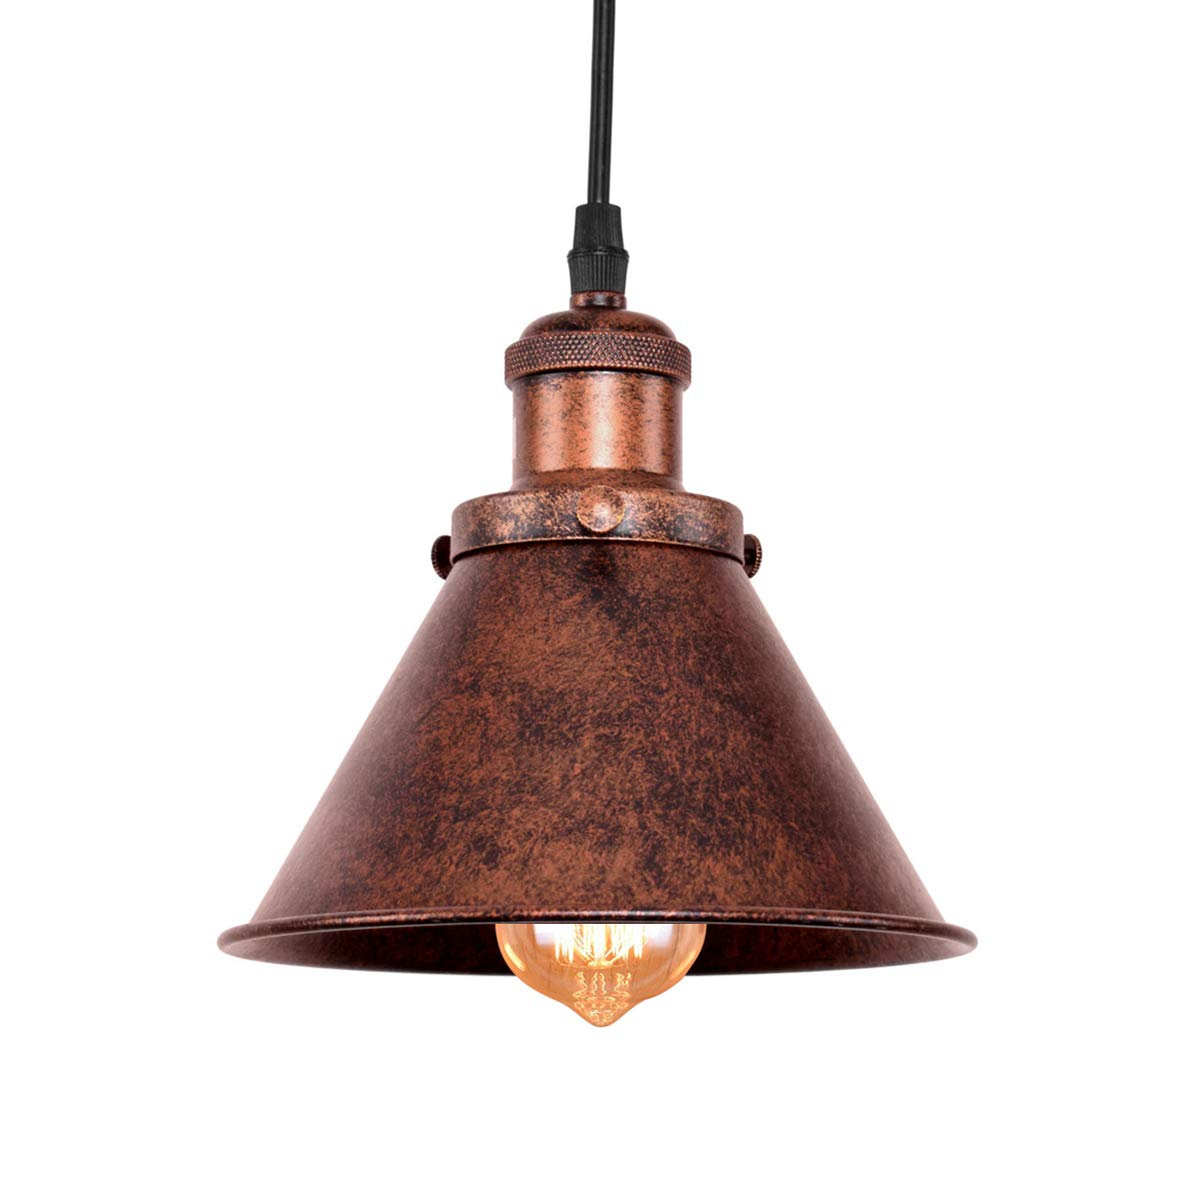 Lingkai Industial Pendant Lighting Single Light Hanging Light Fixture Antique Copper Finished Ceiling Light with Cone Shade